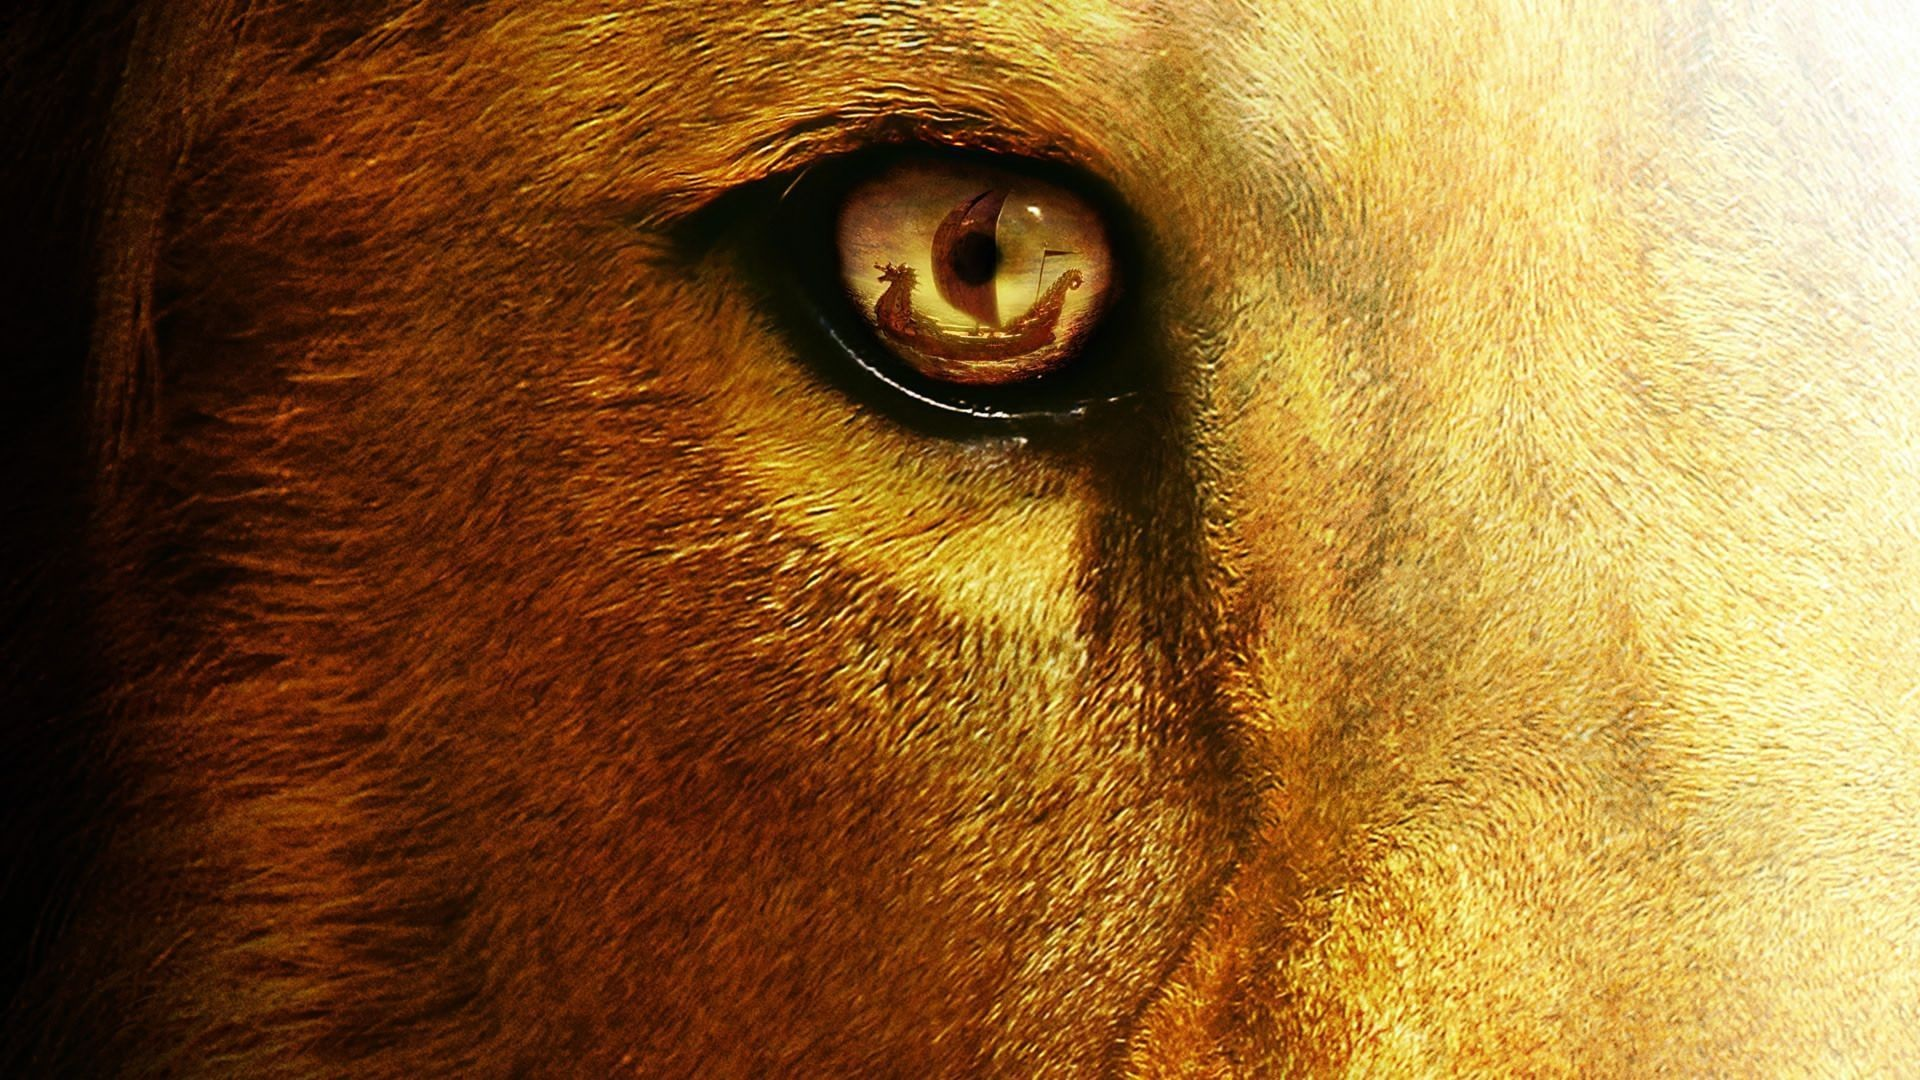 Best 25 Lion Hd Wallpaper Ideas On Pinterest: Angry Lion Eyes Wallpaper ·① WallpaperTag